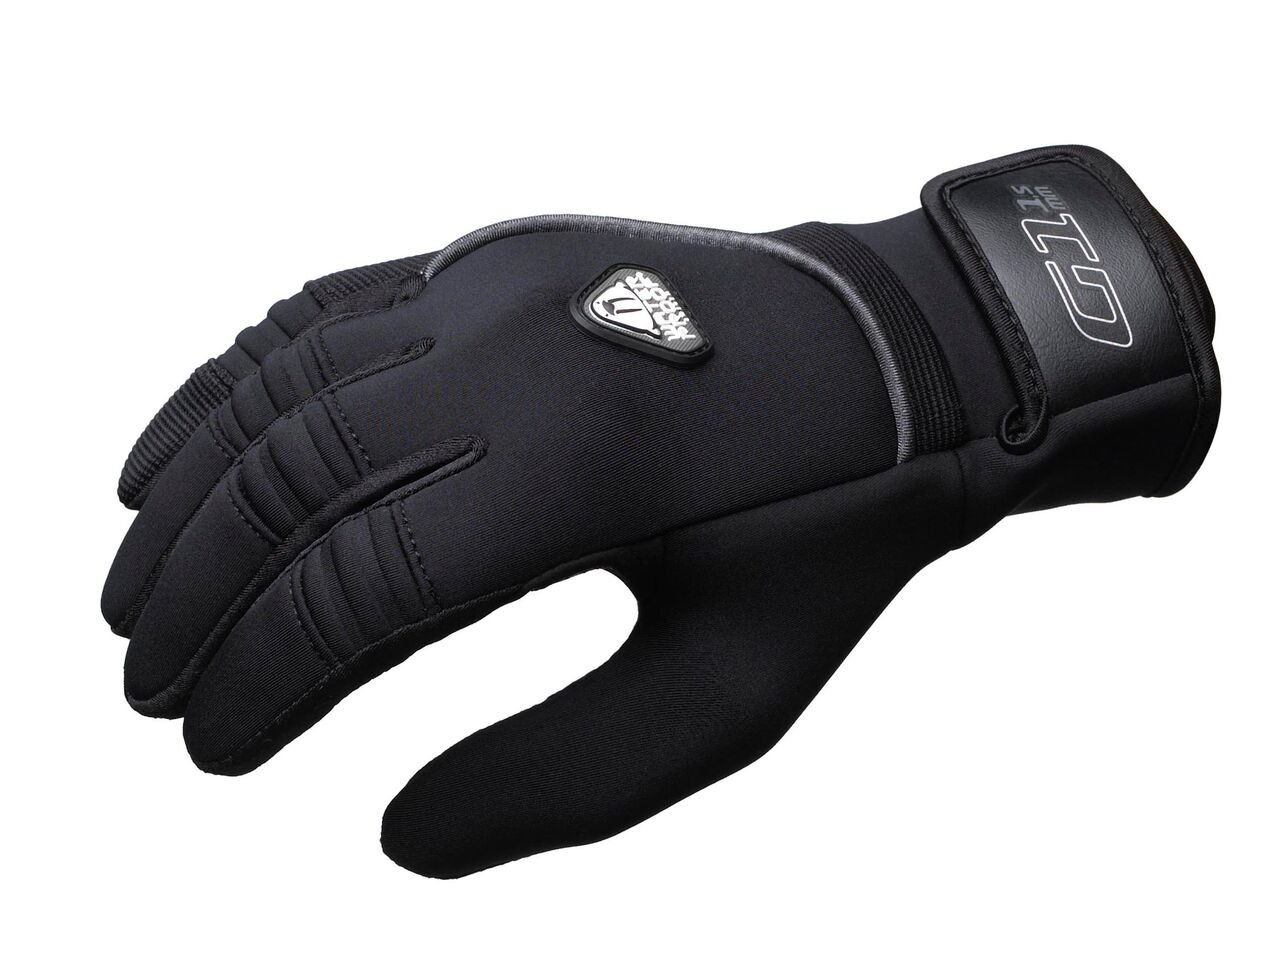 WATERPROOF G1 Five-Finger 1.5mm Glove